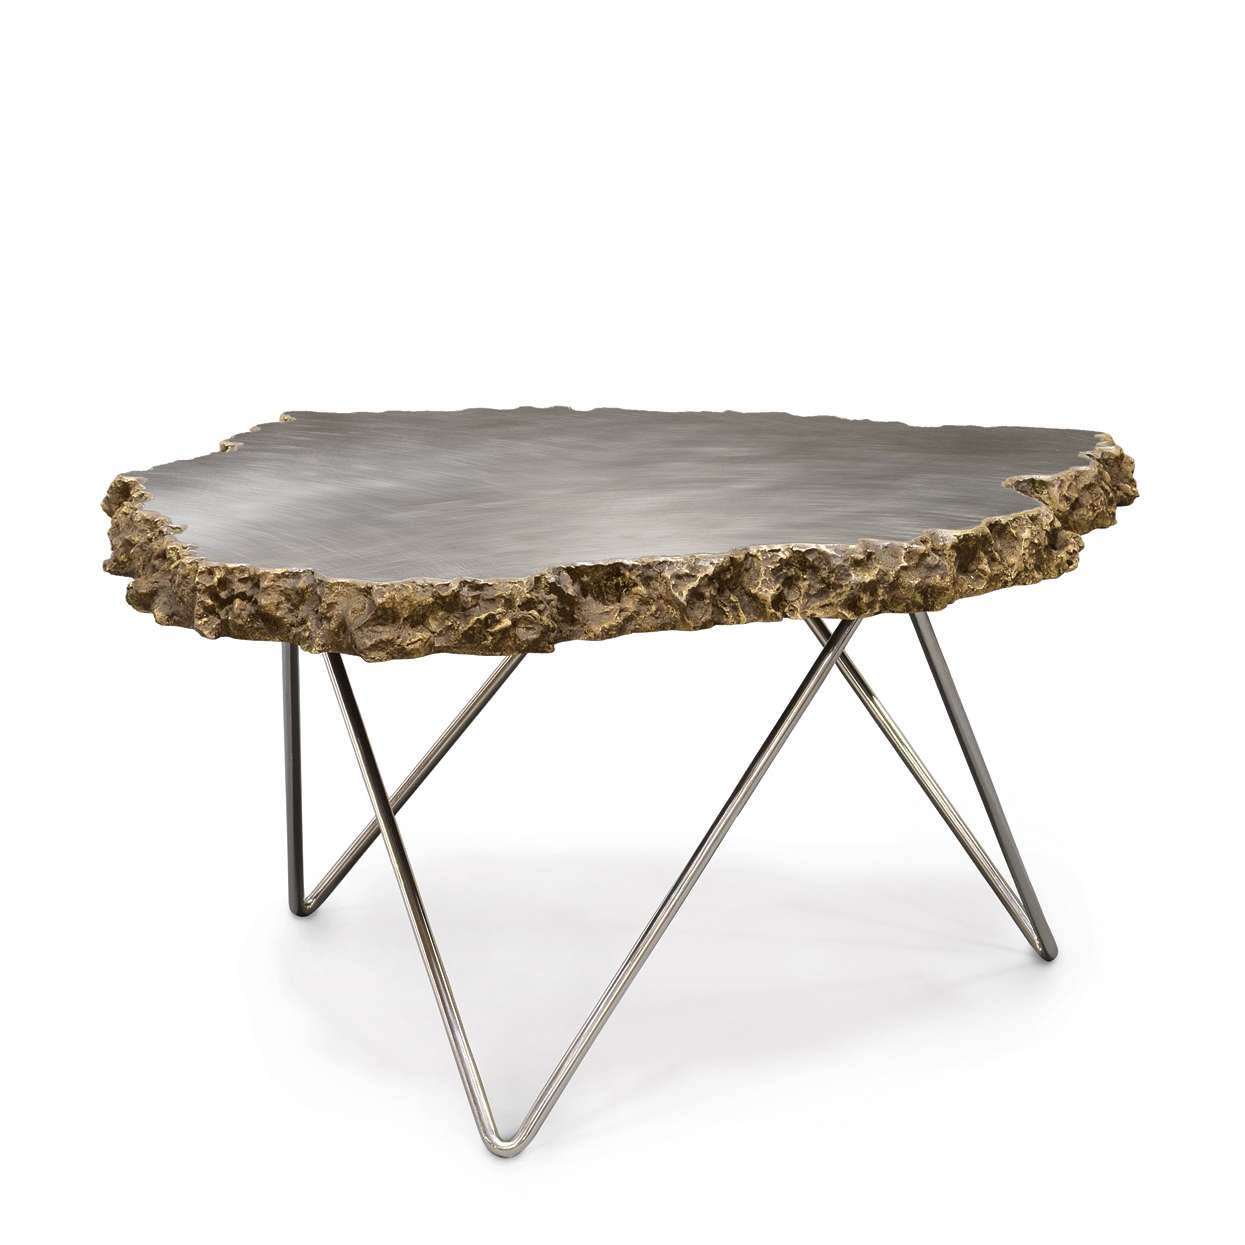 Large Stainless Steel And Lava Stone Coffee Table – Mecox Gardens With Most Recent Stone Coffee Table (View 12 of 20)